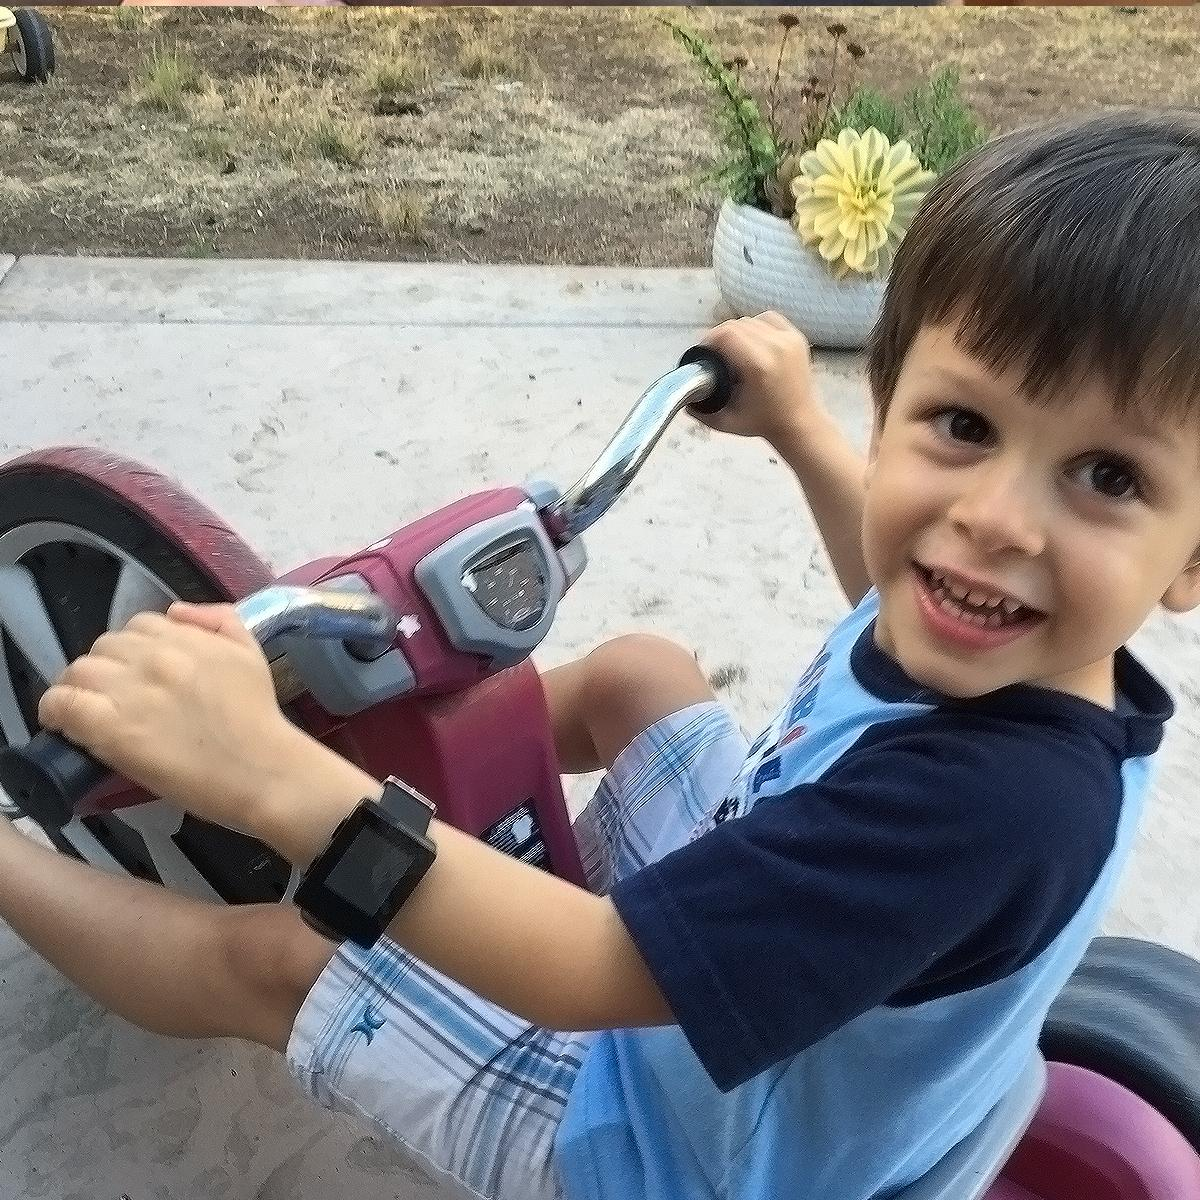 Smartwatches for kids on bikes